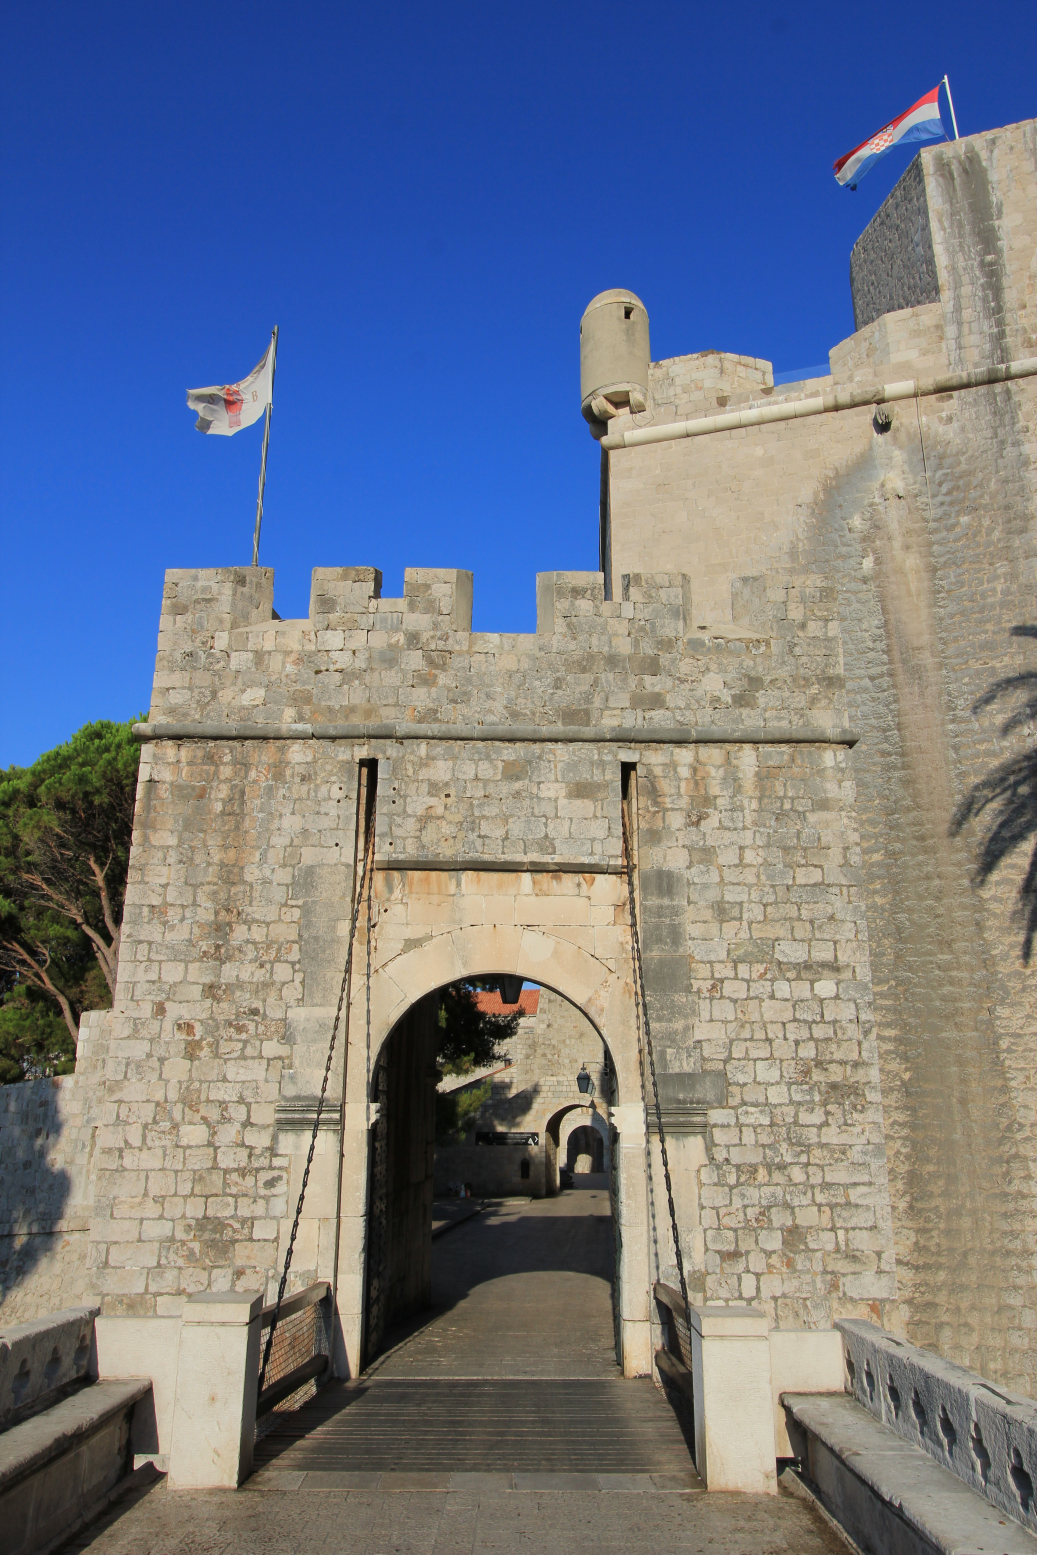 The national flag of Croatia and the Libertas flag of Dubrovnik fly in the morning sun at Ploče Gate